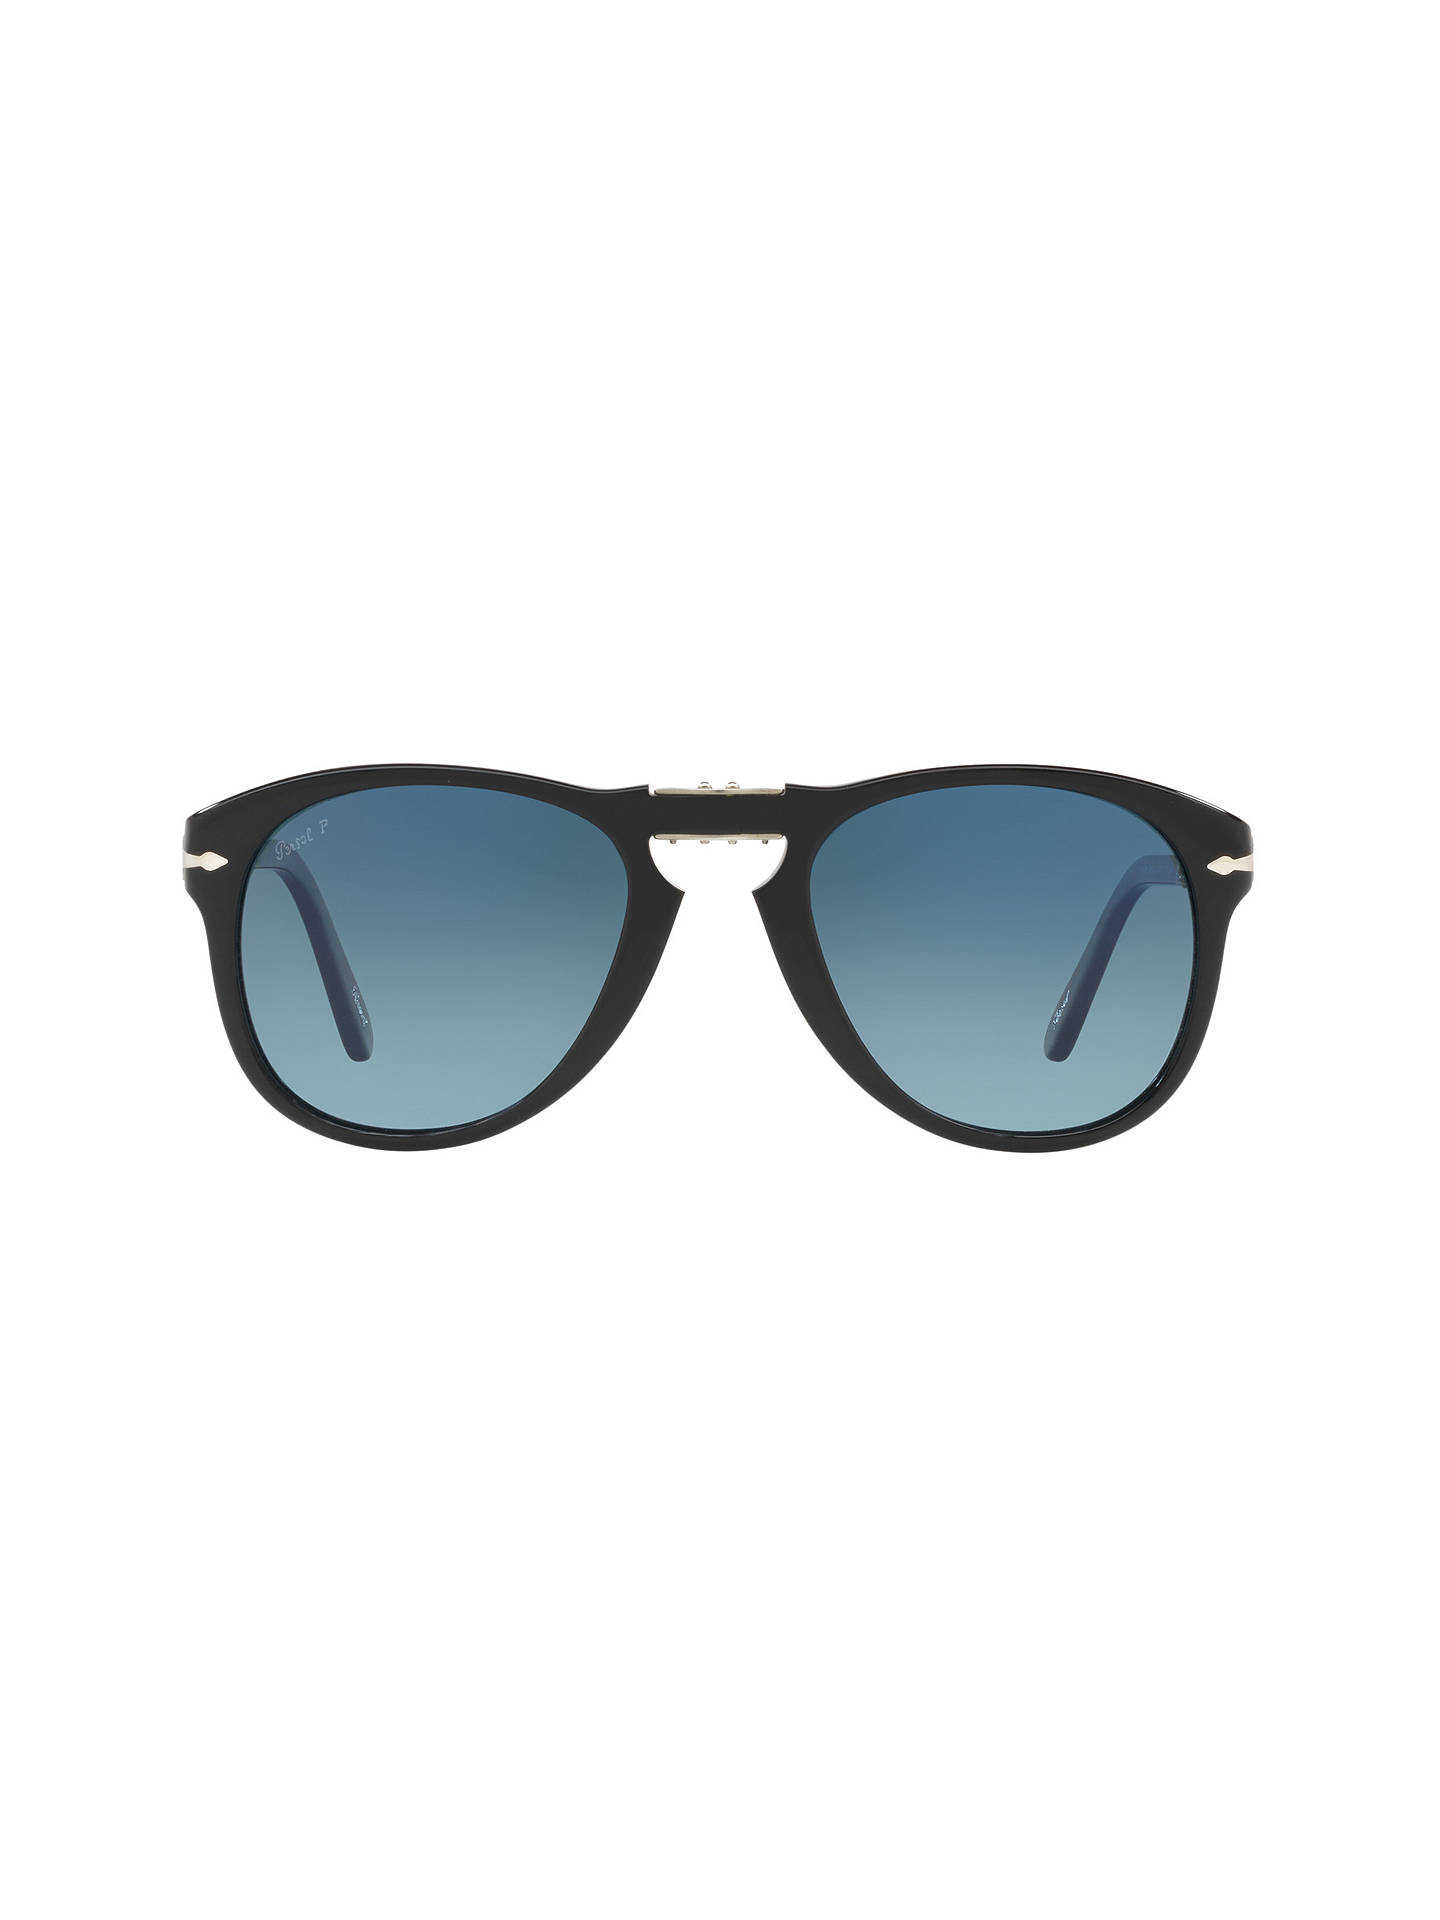 6c1988b5ce48 ... Buy Persol PO0714SM Steve McQueen Folding Polarised Aviator Sunglasses,  Black/Blue Gradient Online at ...